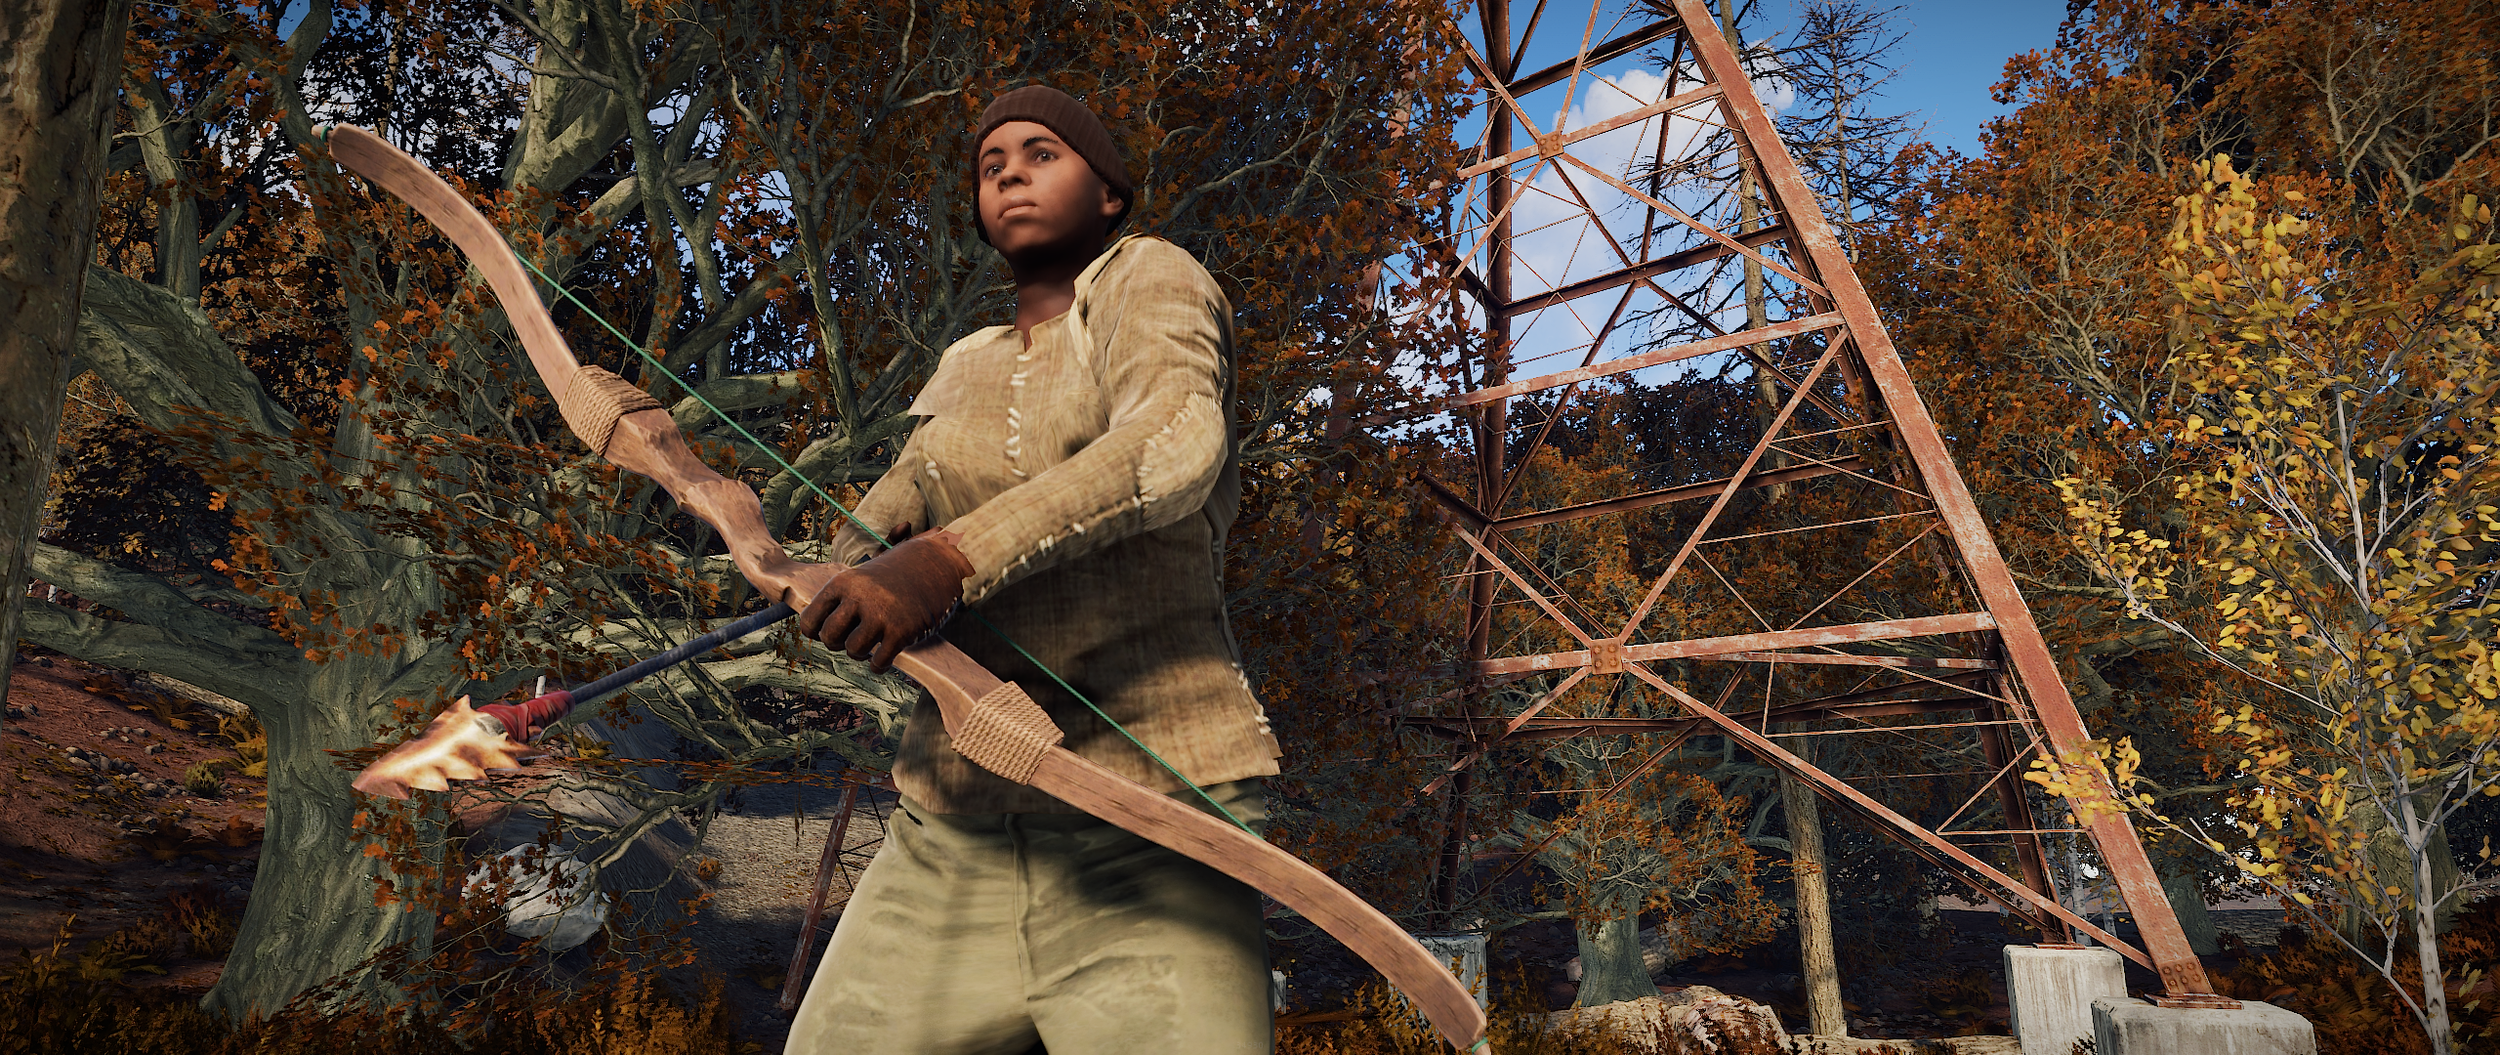 Rust update for May 2, 2019 · The Smol Update · Steam Database